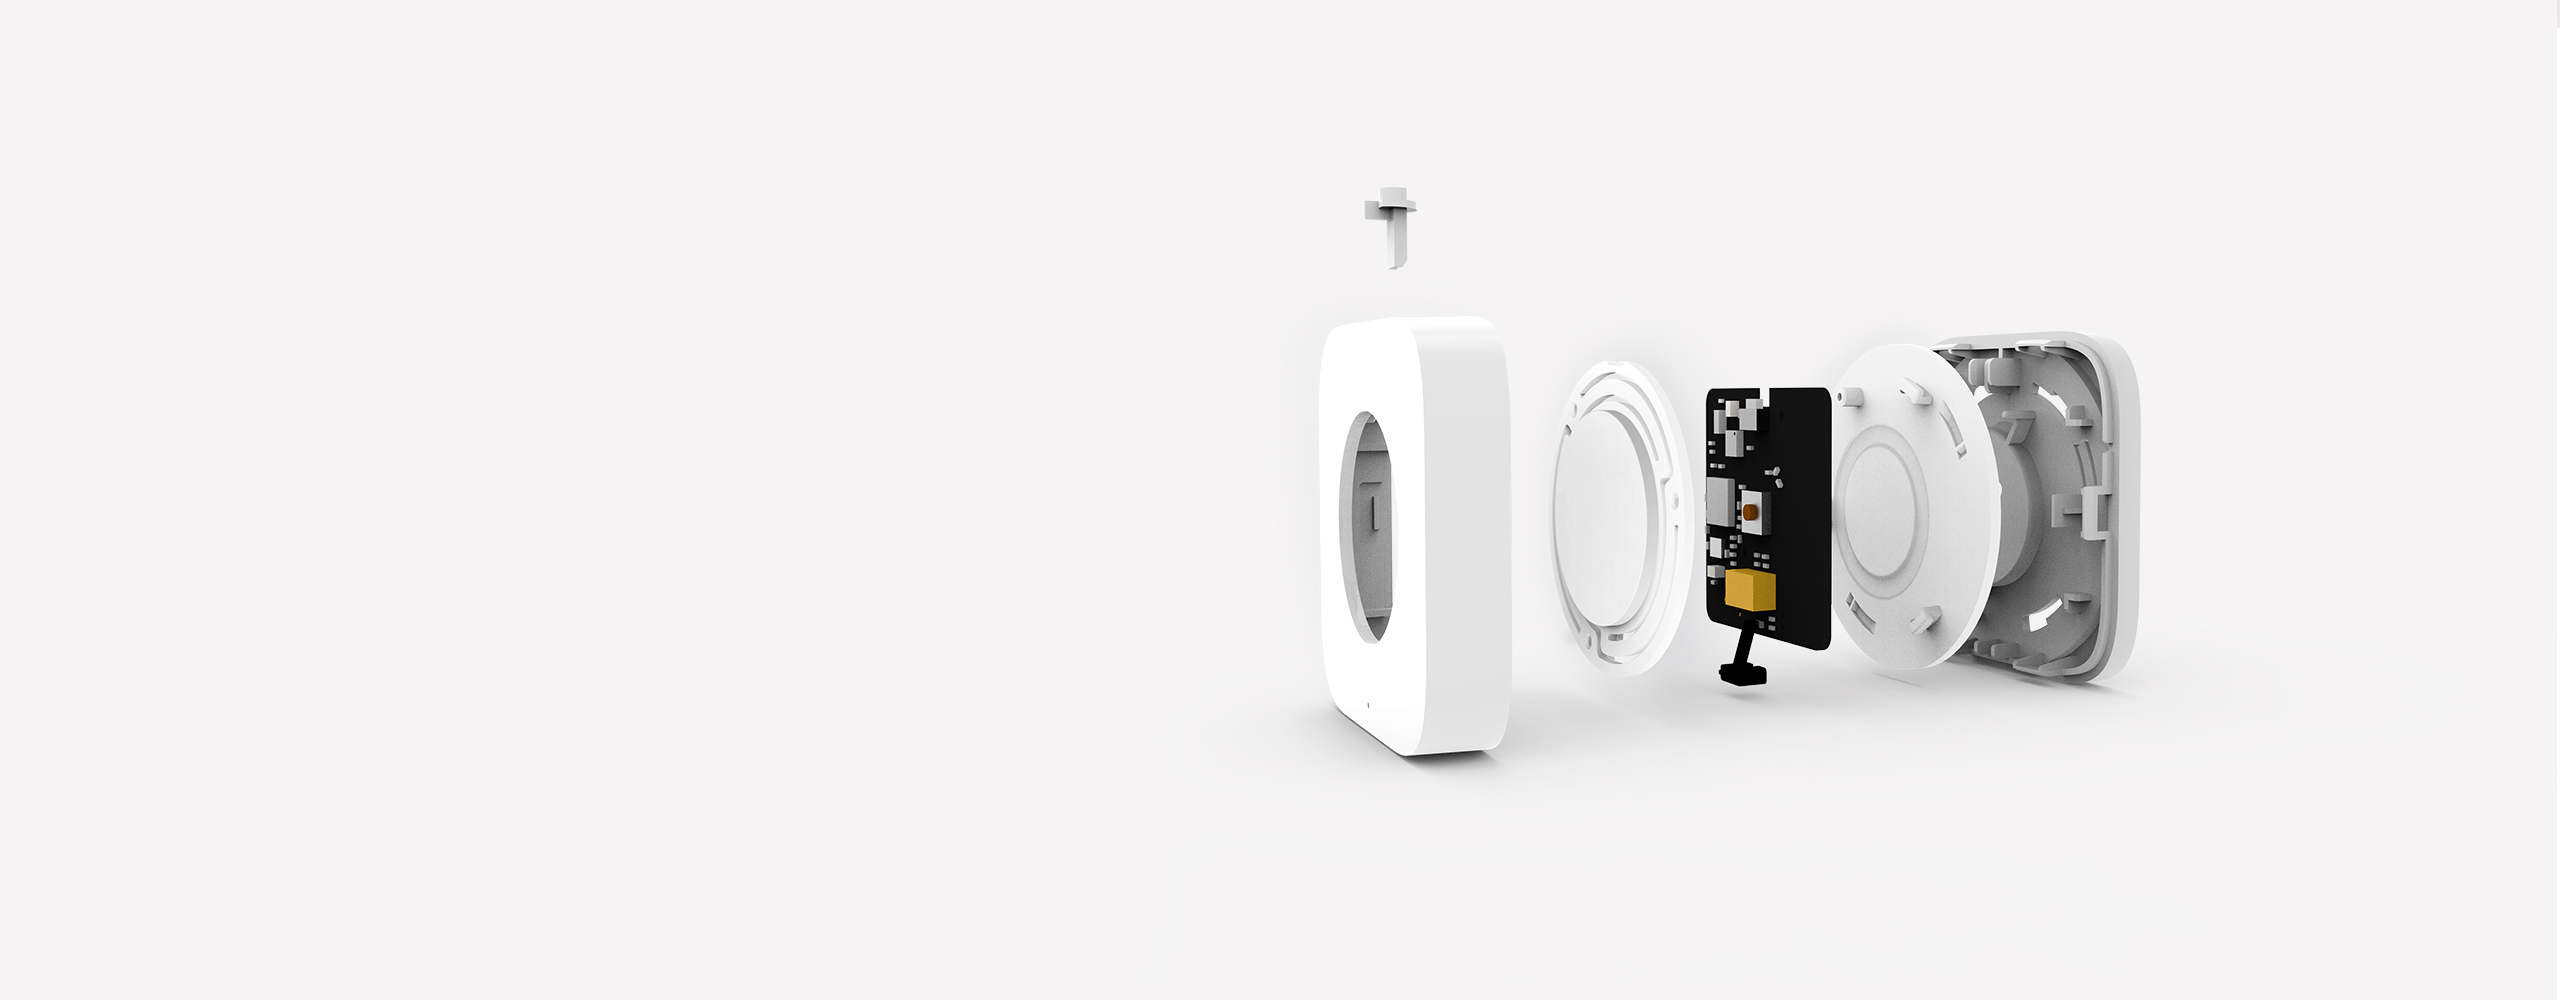 Aqara smart light switch wireless version with compact design and low energy consumption